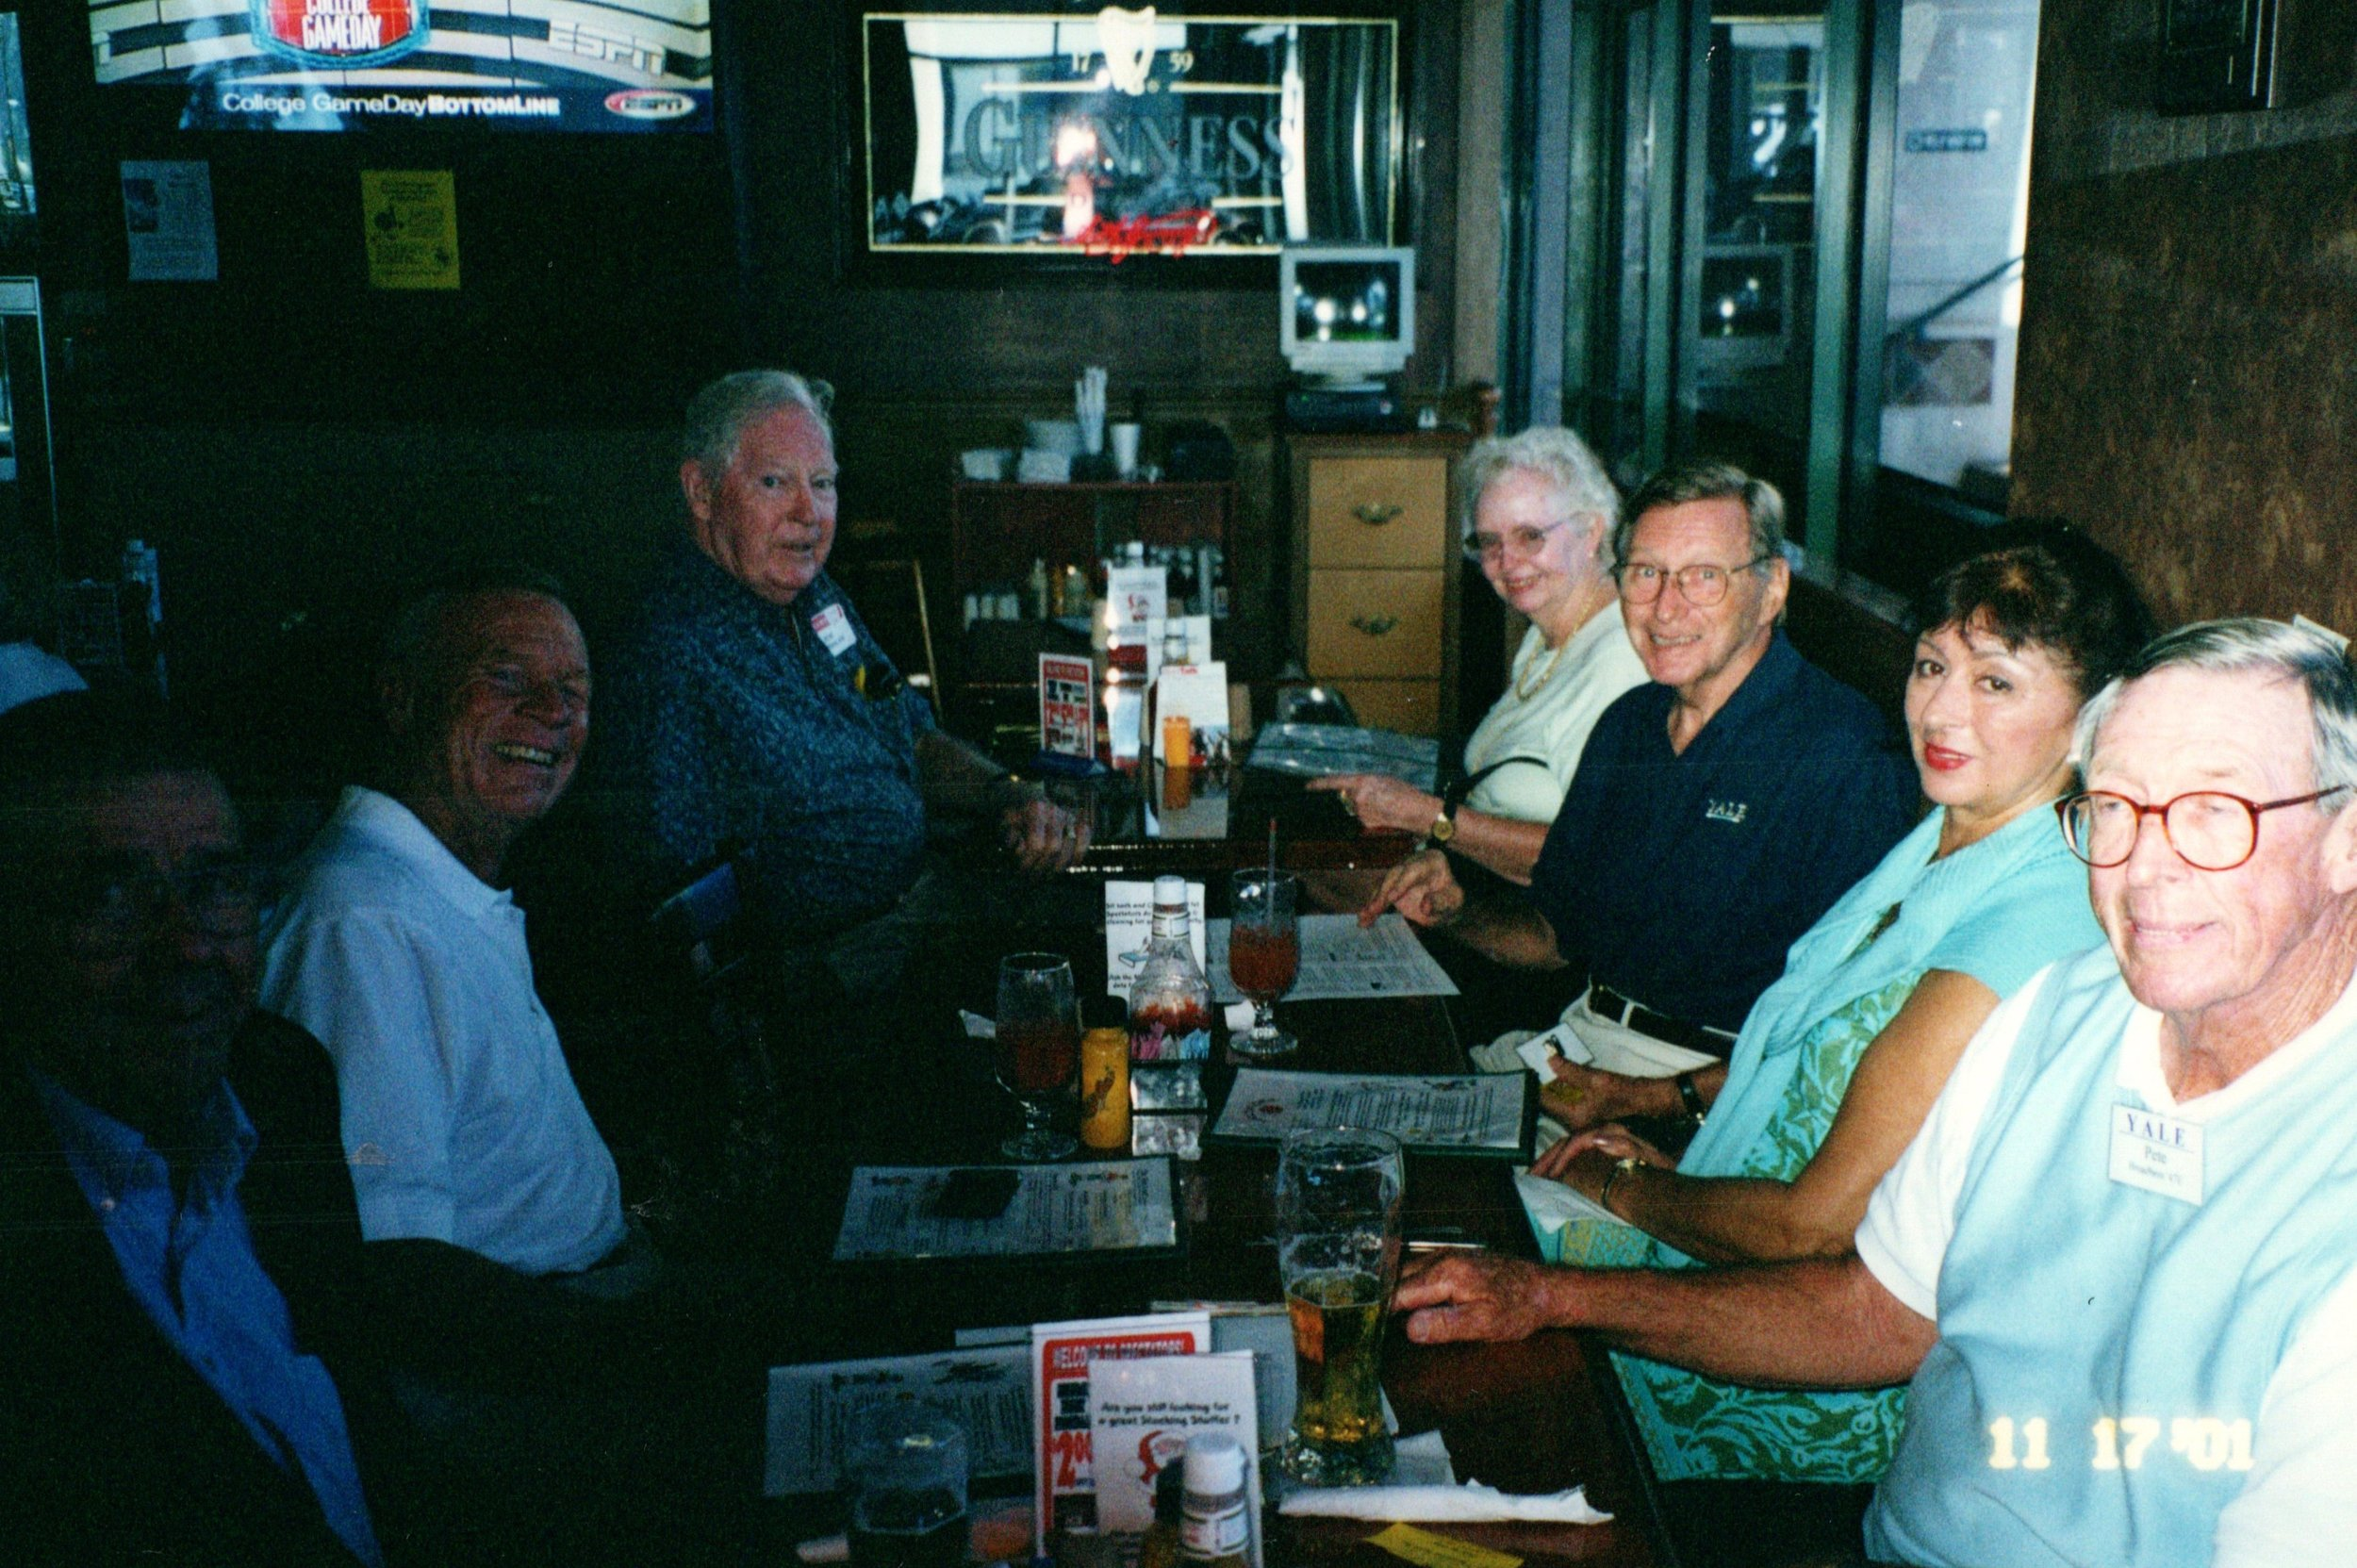 11_17_2001 - THE GAME - SPECTATORS GRILL 9.jpg